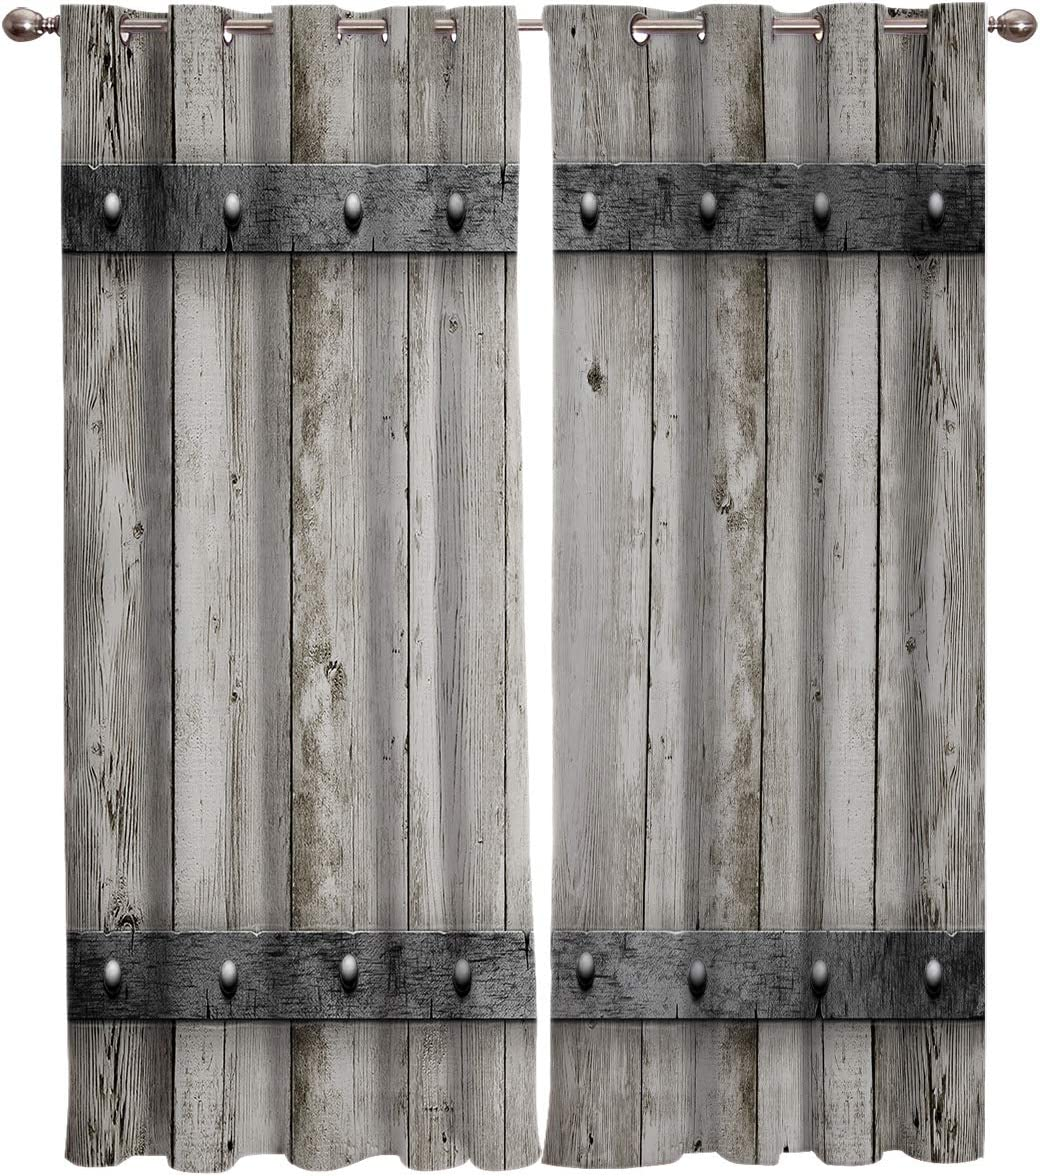 Shine-Home Window Curtains with Ranking TOP2 Rustic Jacksonville Mall Gromments Kitchen Drapes